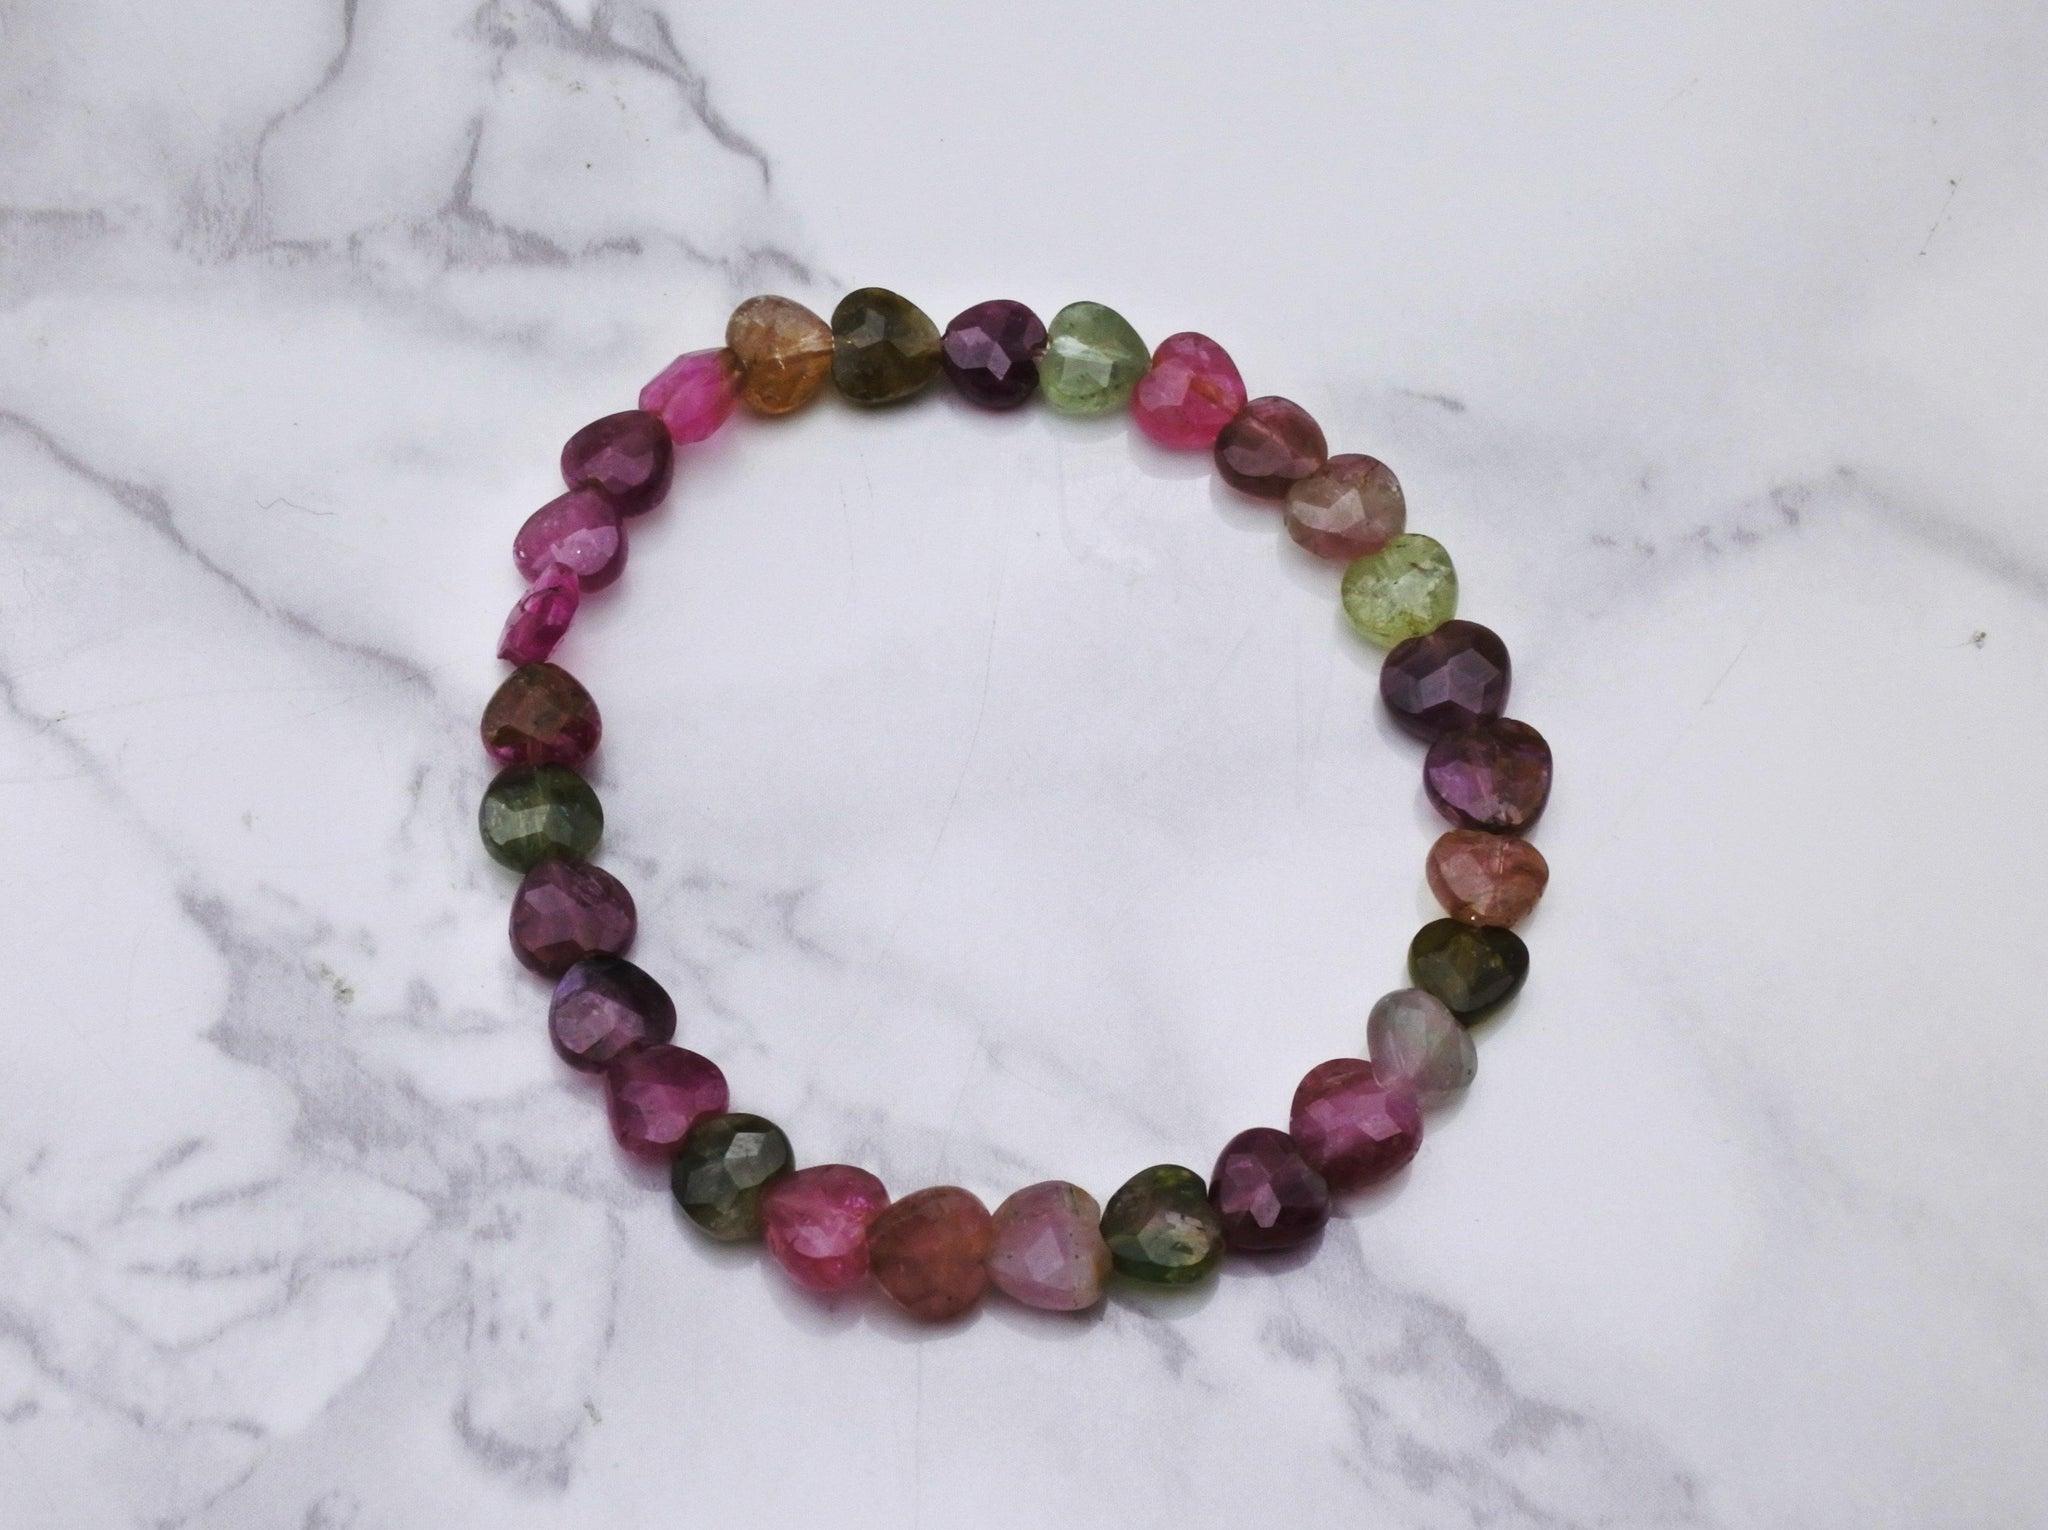 Mixed Tourmaline Heart Bracelet Med - Earth's Treasures